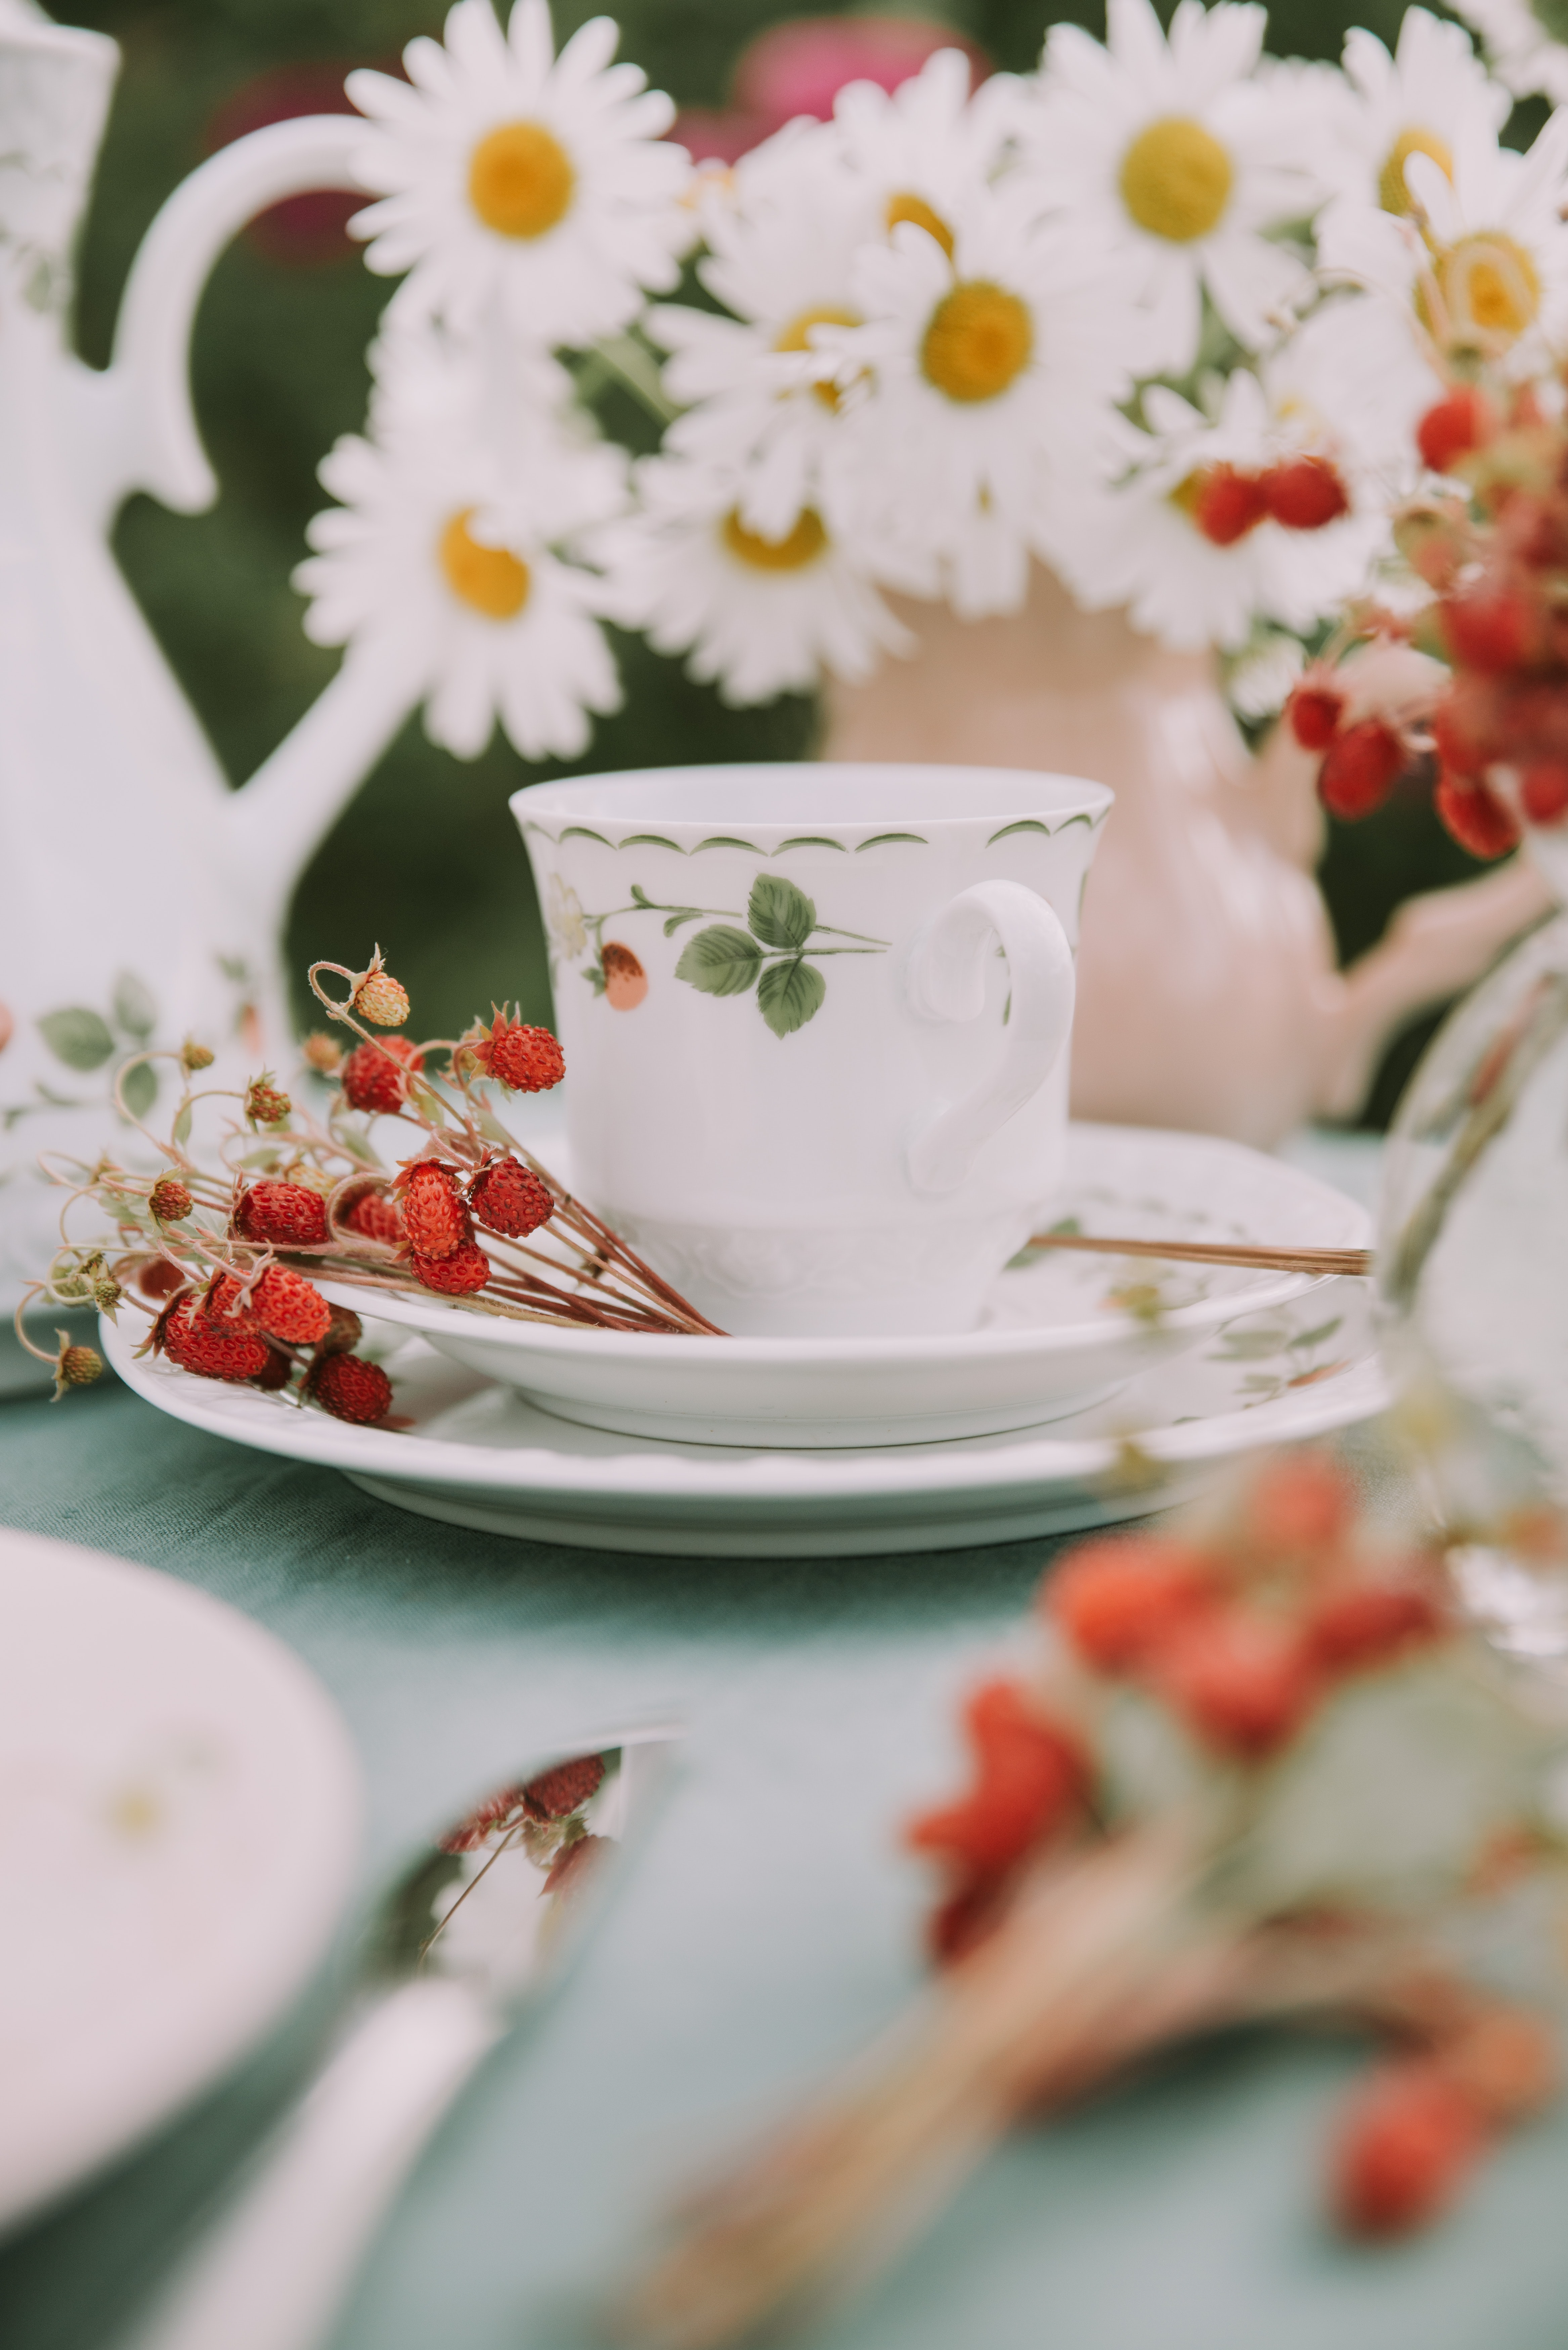 white ceramic teacup and saucer near flowers